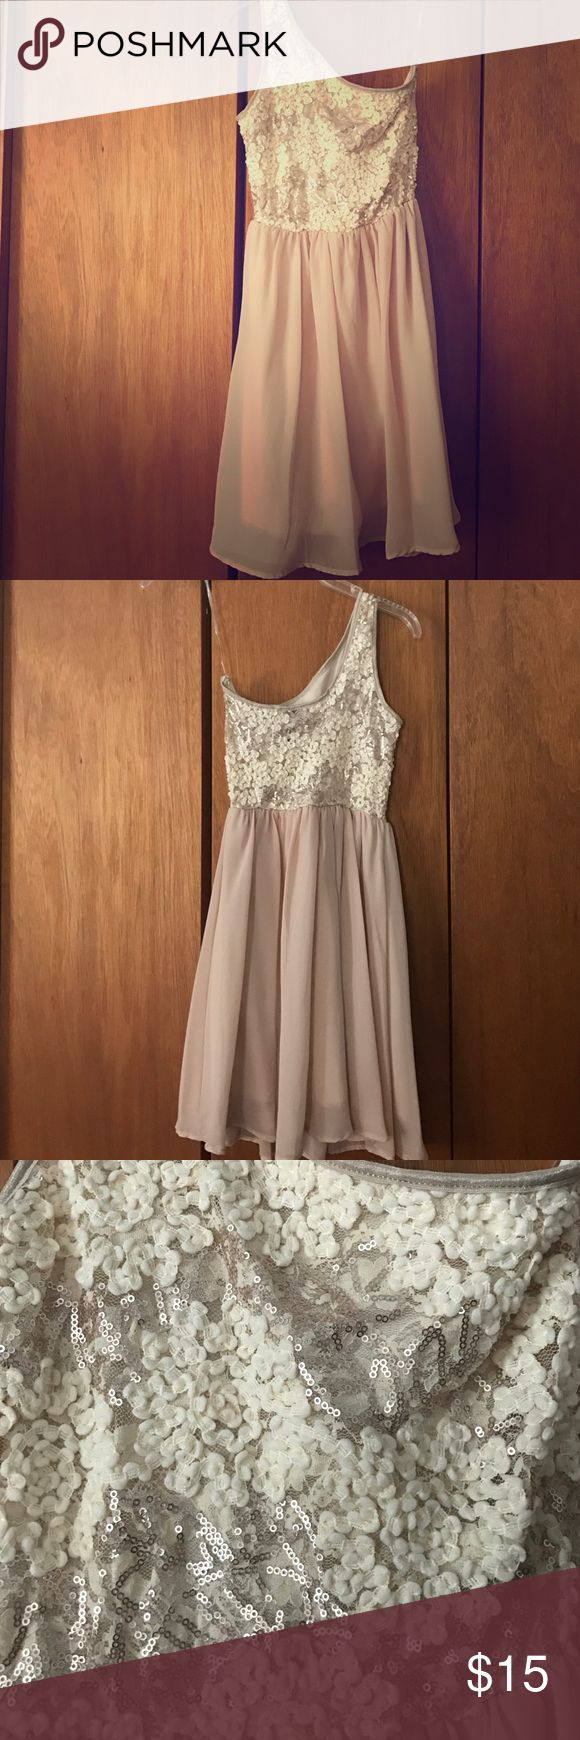 Champagne one strap dress One strap champagne colored dress with sequin. Never worn. Bought from an online boutique. Size small Dresses One Shoulder